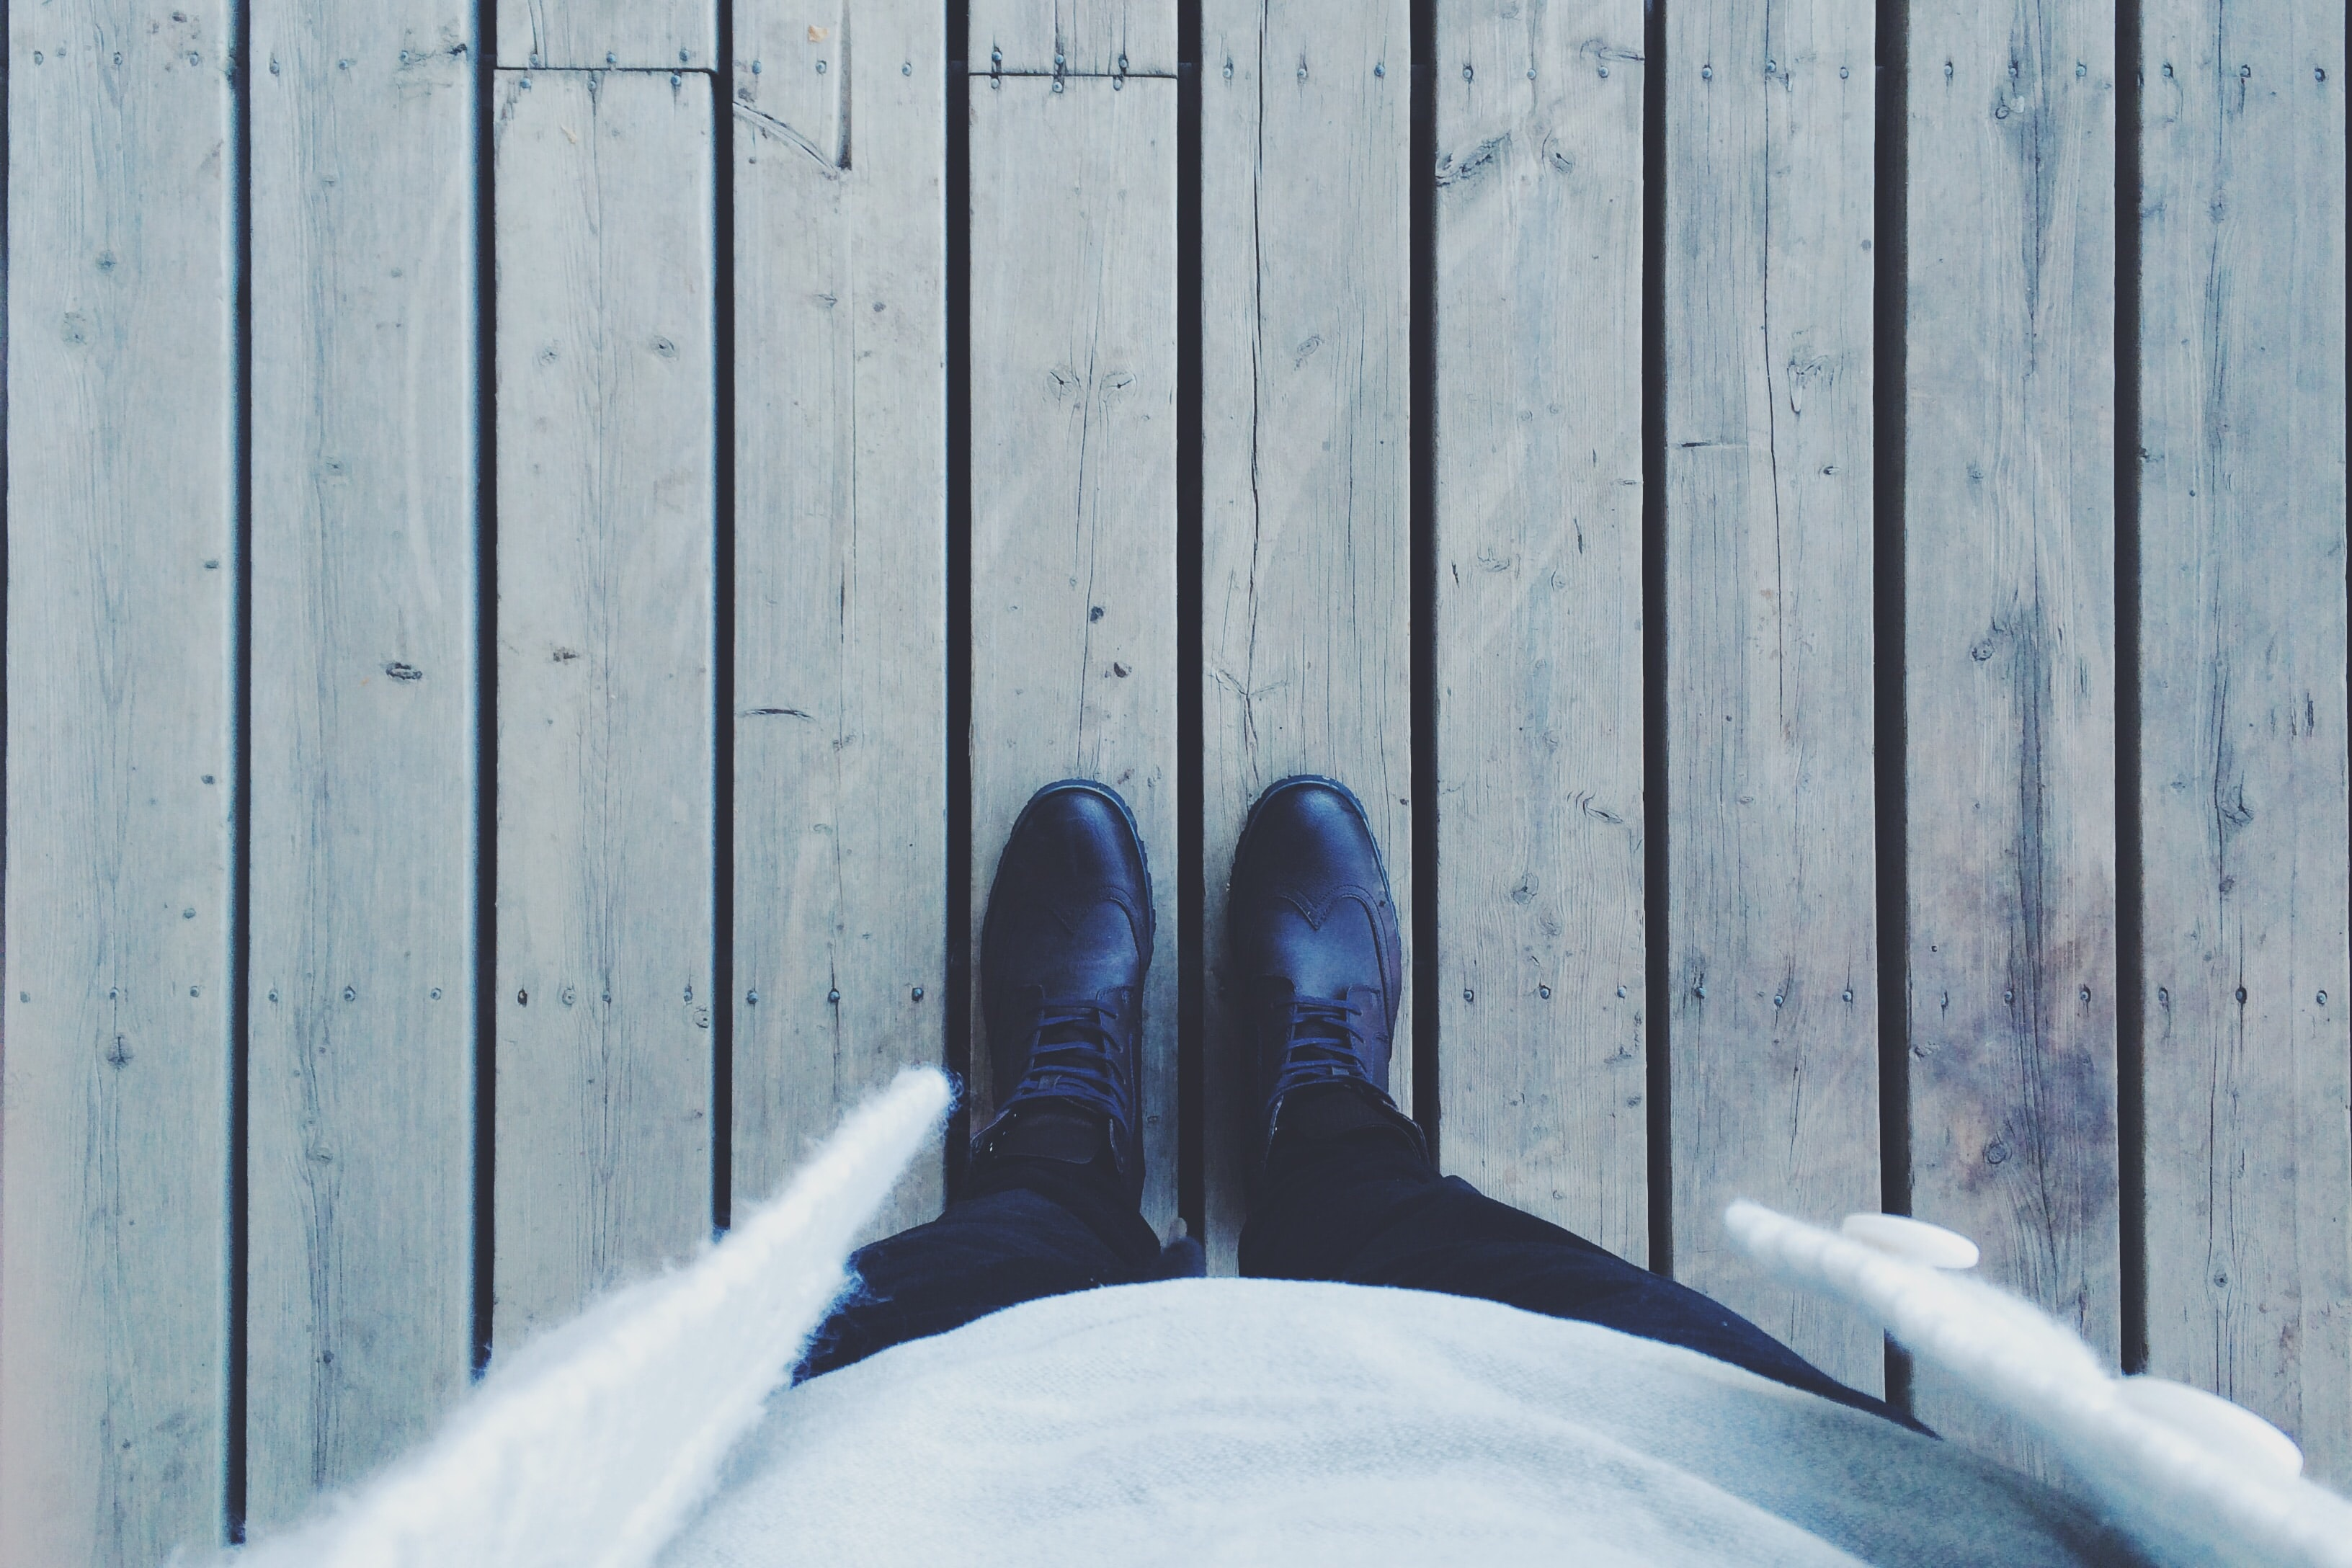 Looking down at the feet of a person wearing black shoes on a boardwalk